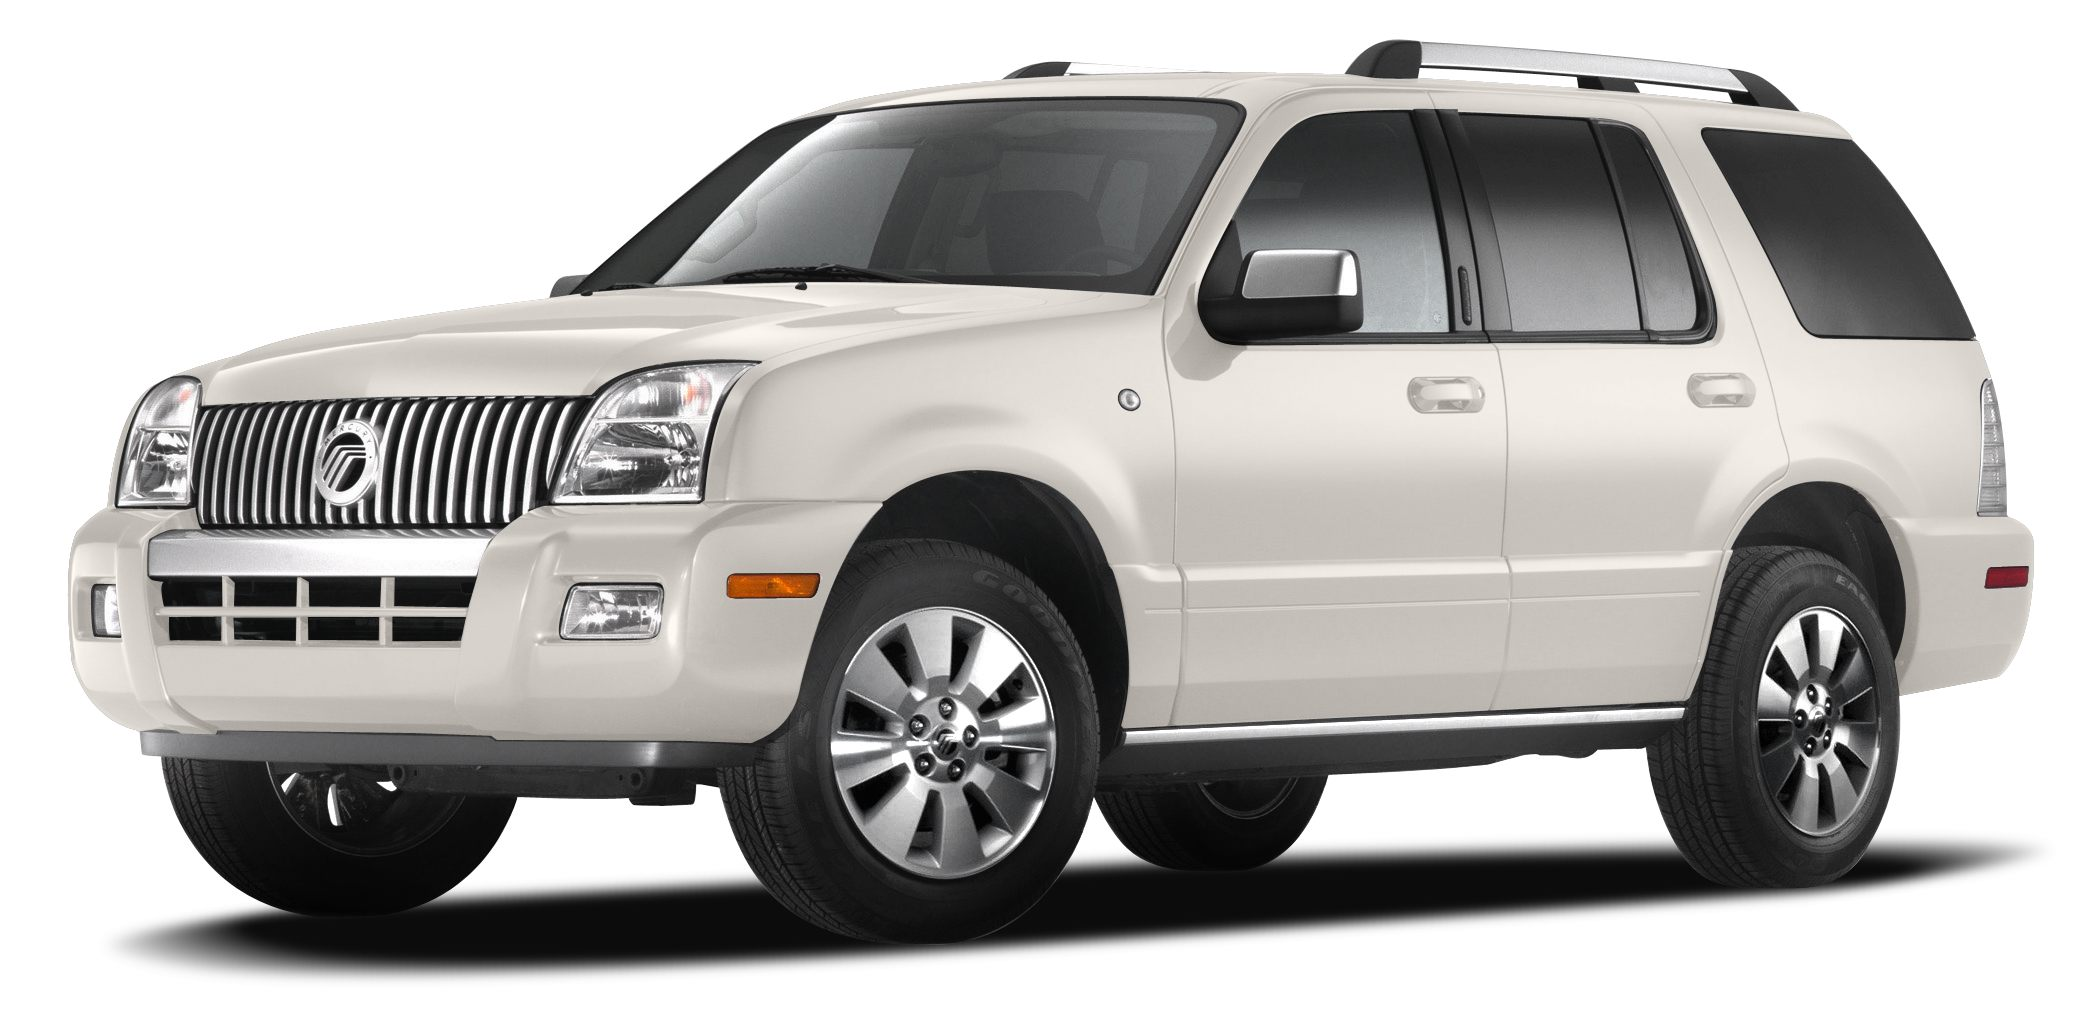 2010 Mercury Mountaineer Premier New Inventory All Wheel DriveAWD Own the road at every turn